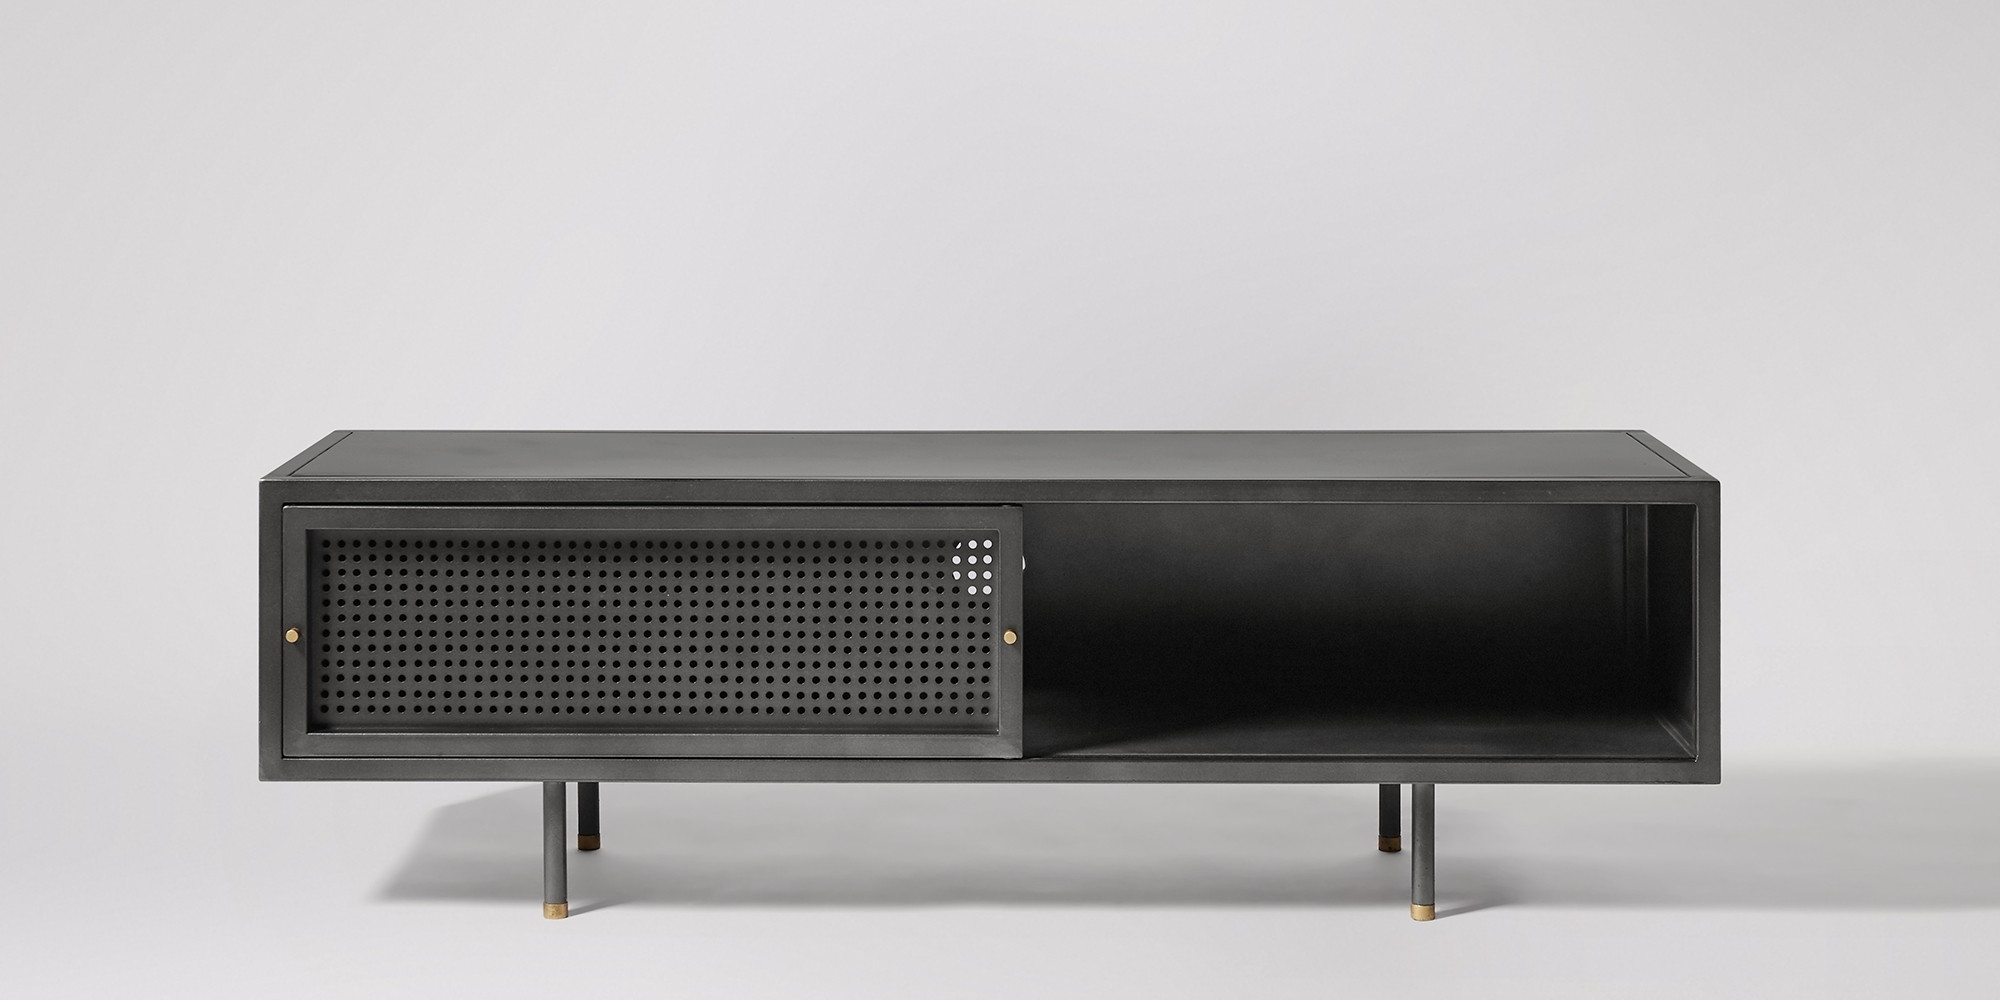 Sheffield Gunmetal & Brass Media Unit | Swoon Editions with Gunmetal Perforated Brass Sideboards (Image 30 of 30)